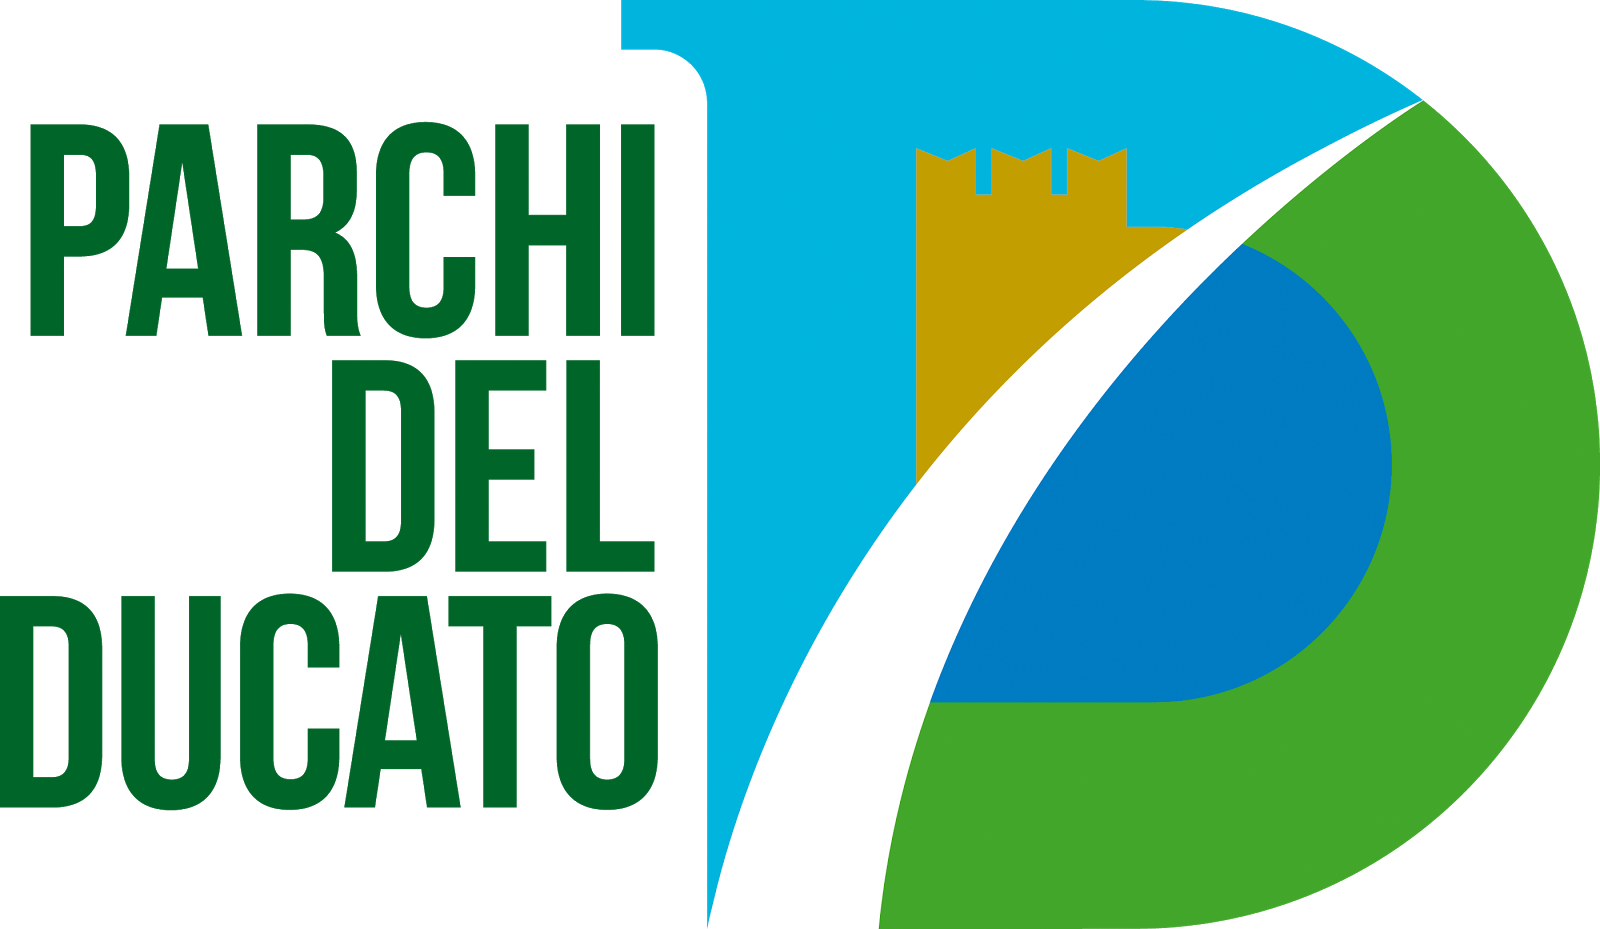 Riserva Naturale Regionale dei Ghirardi